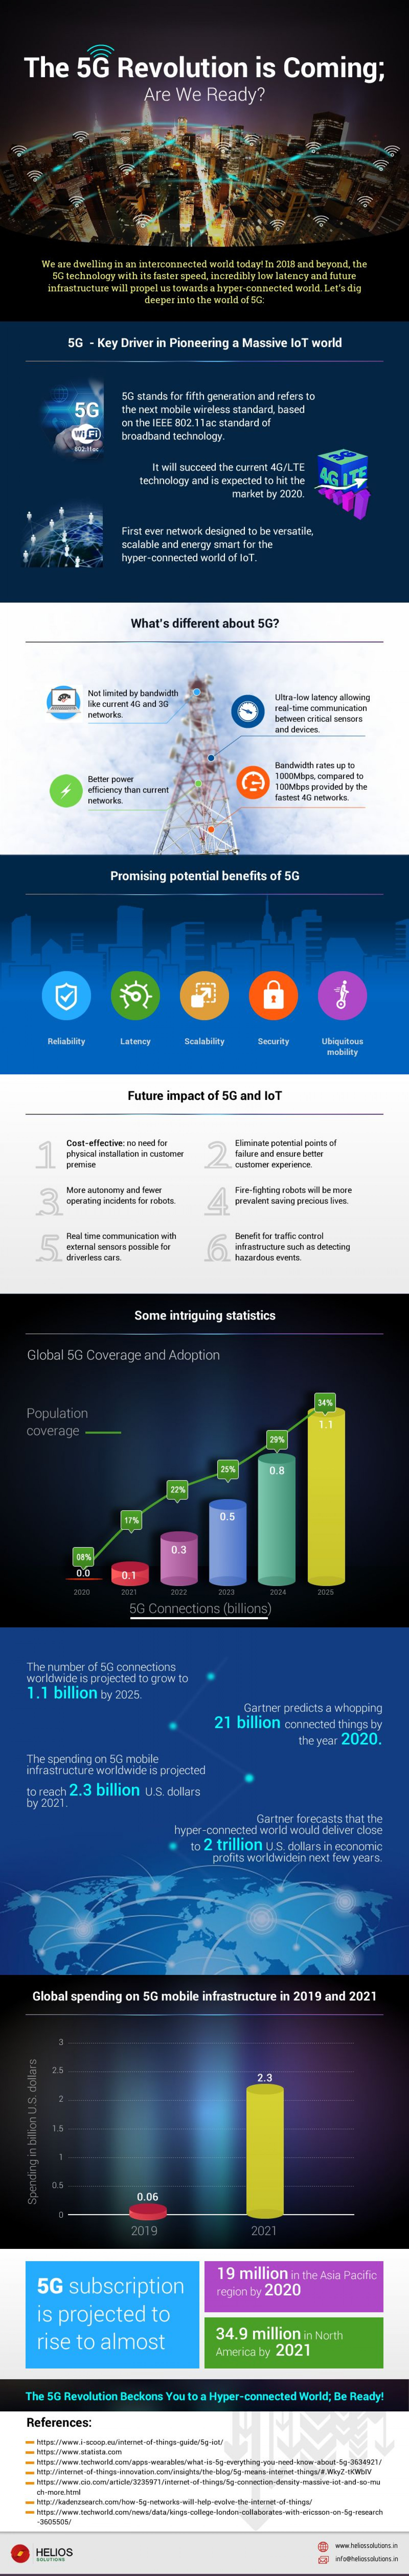 The 5G revolution is Coming; Are We Ready? Infographic